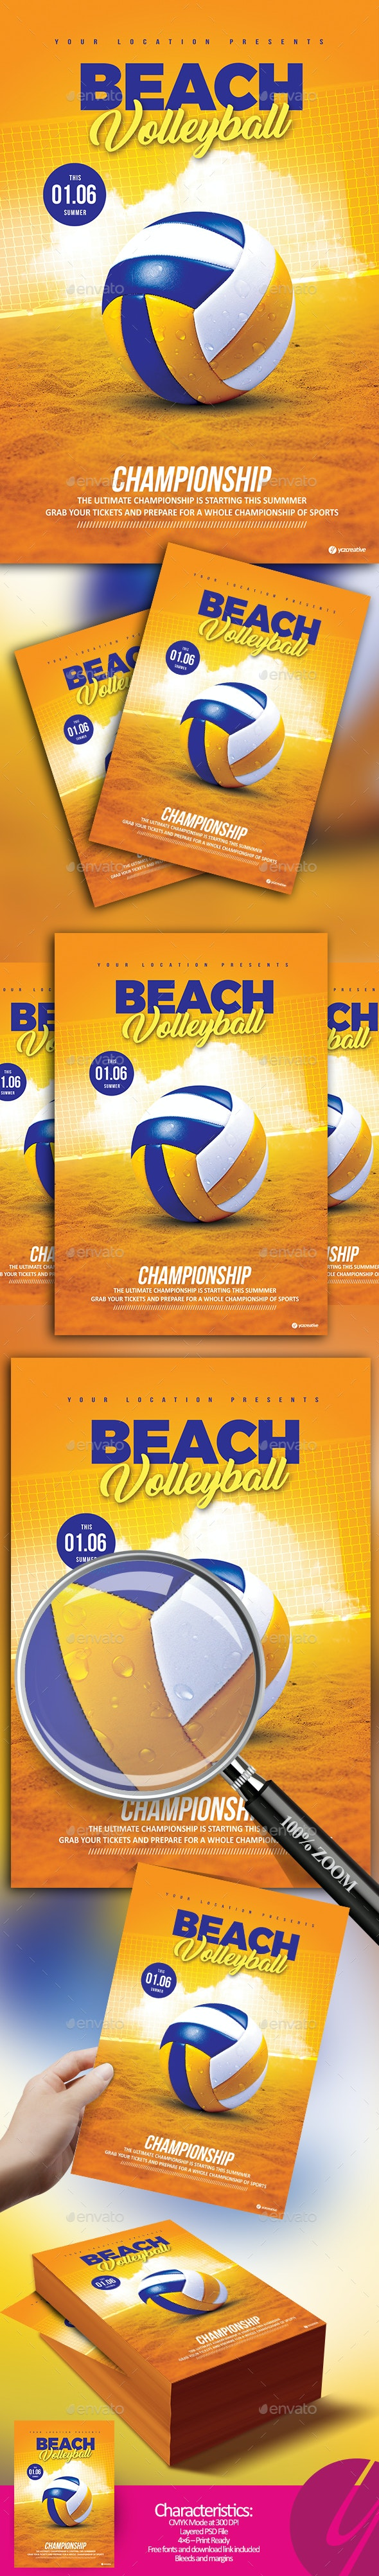 Beach Volleyball Championship - Sports Events